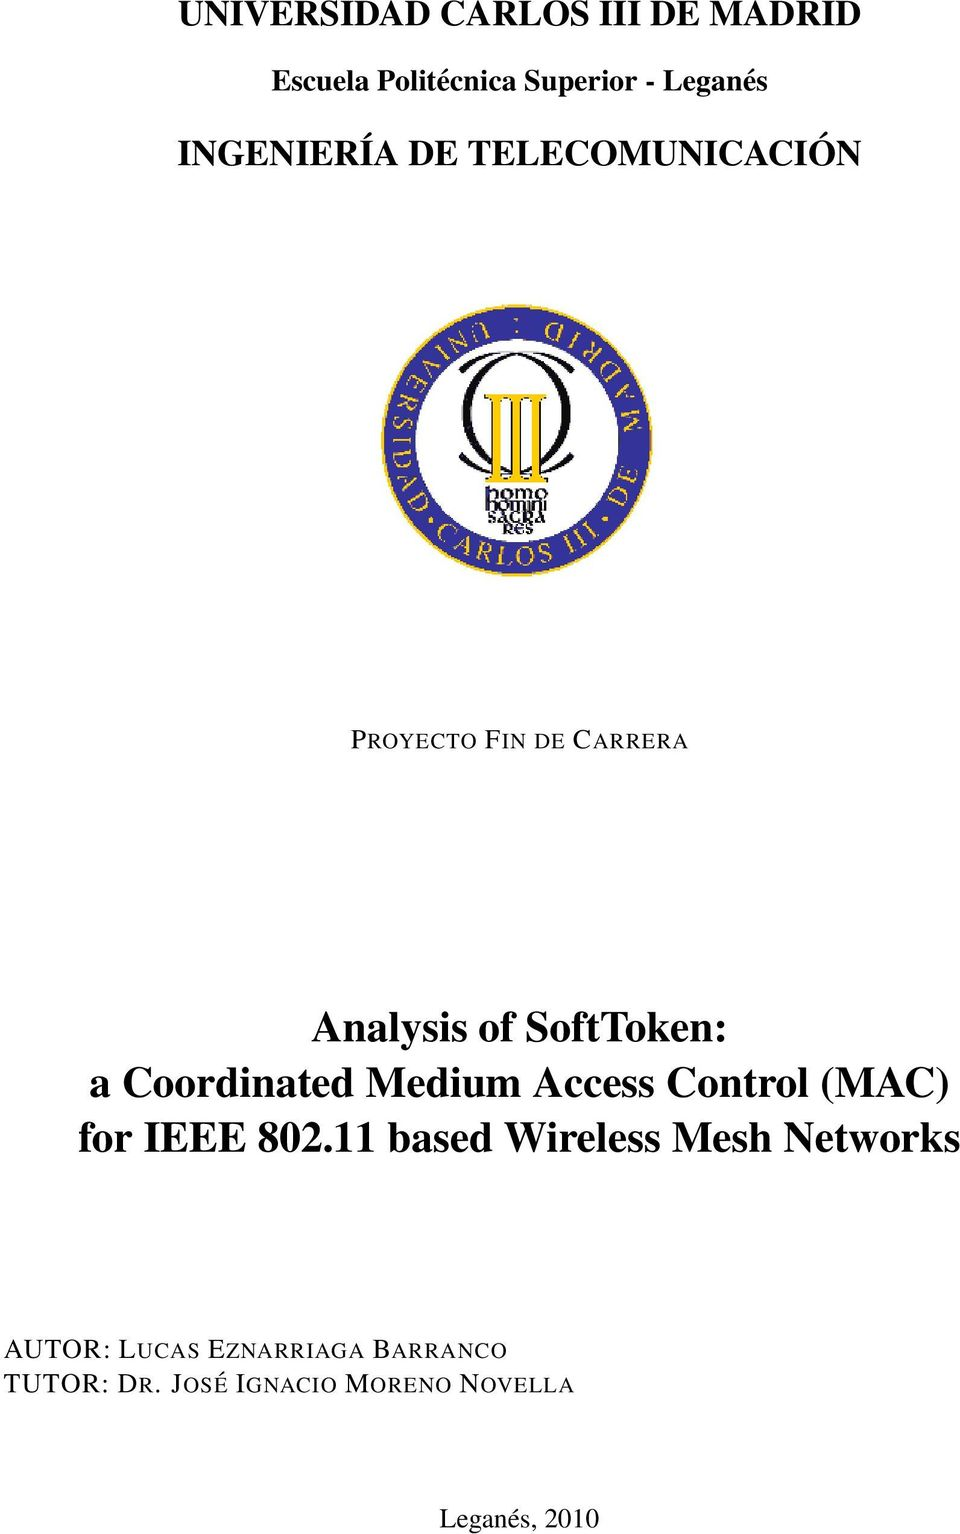 Coordinated Medium Access Control (MAC) for IEEE 802.